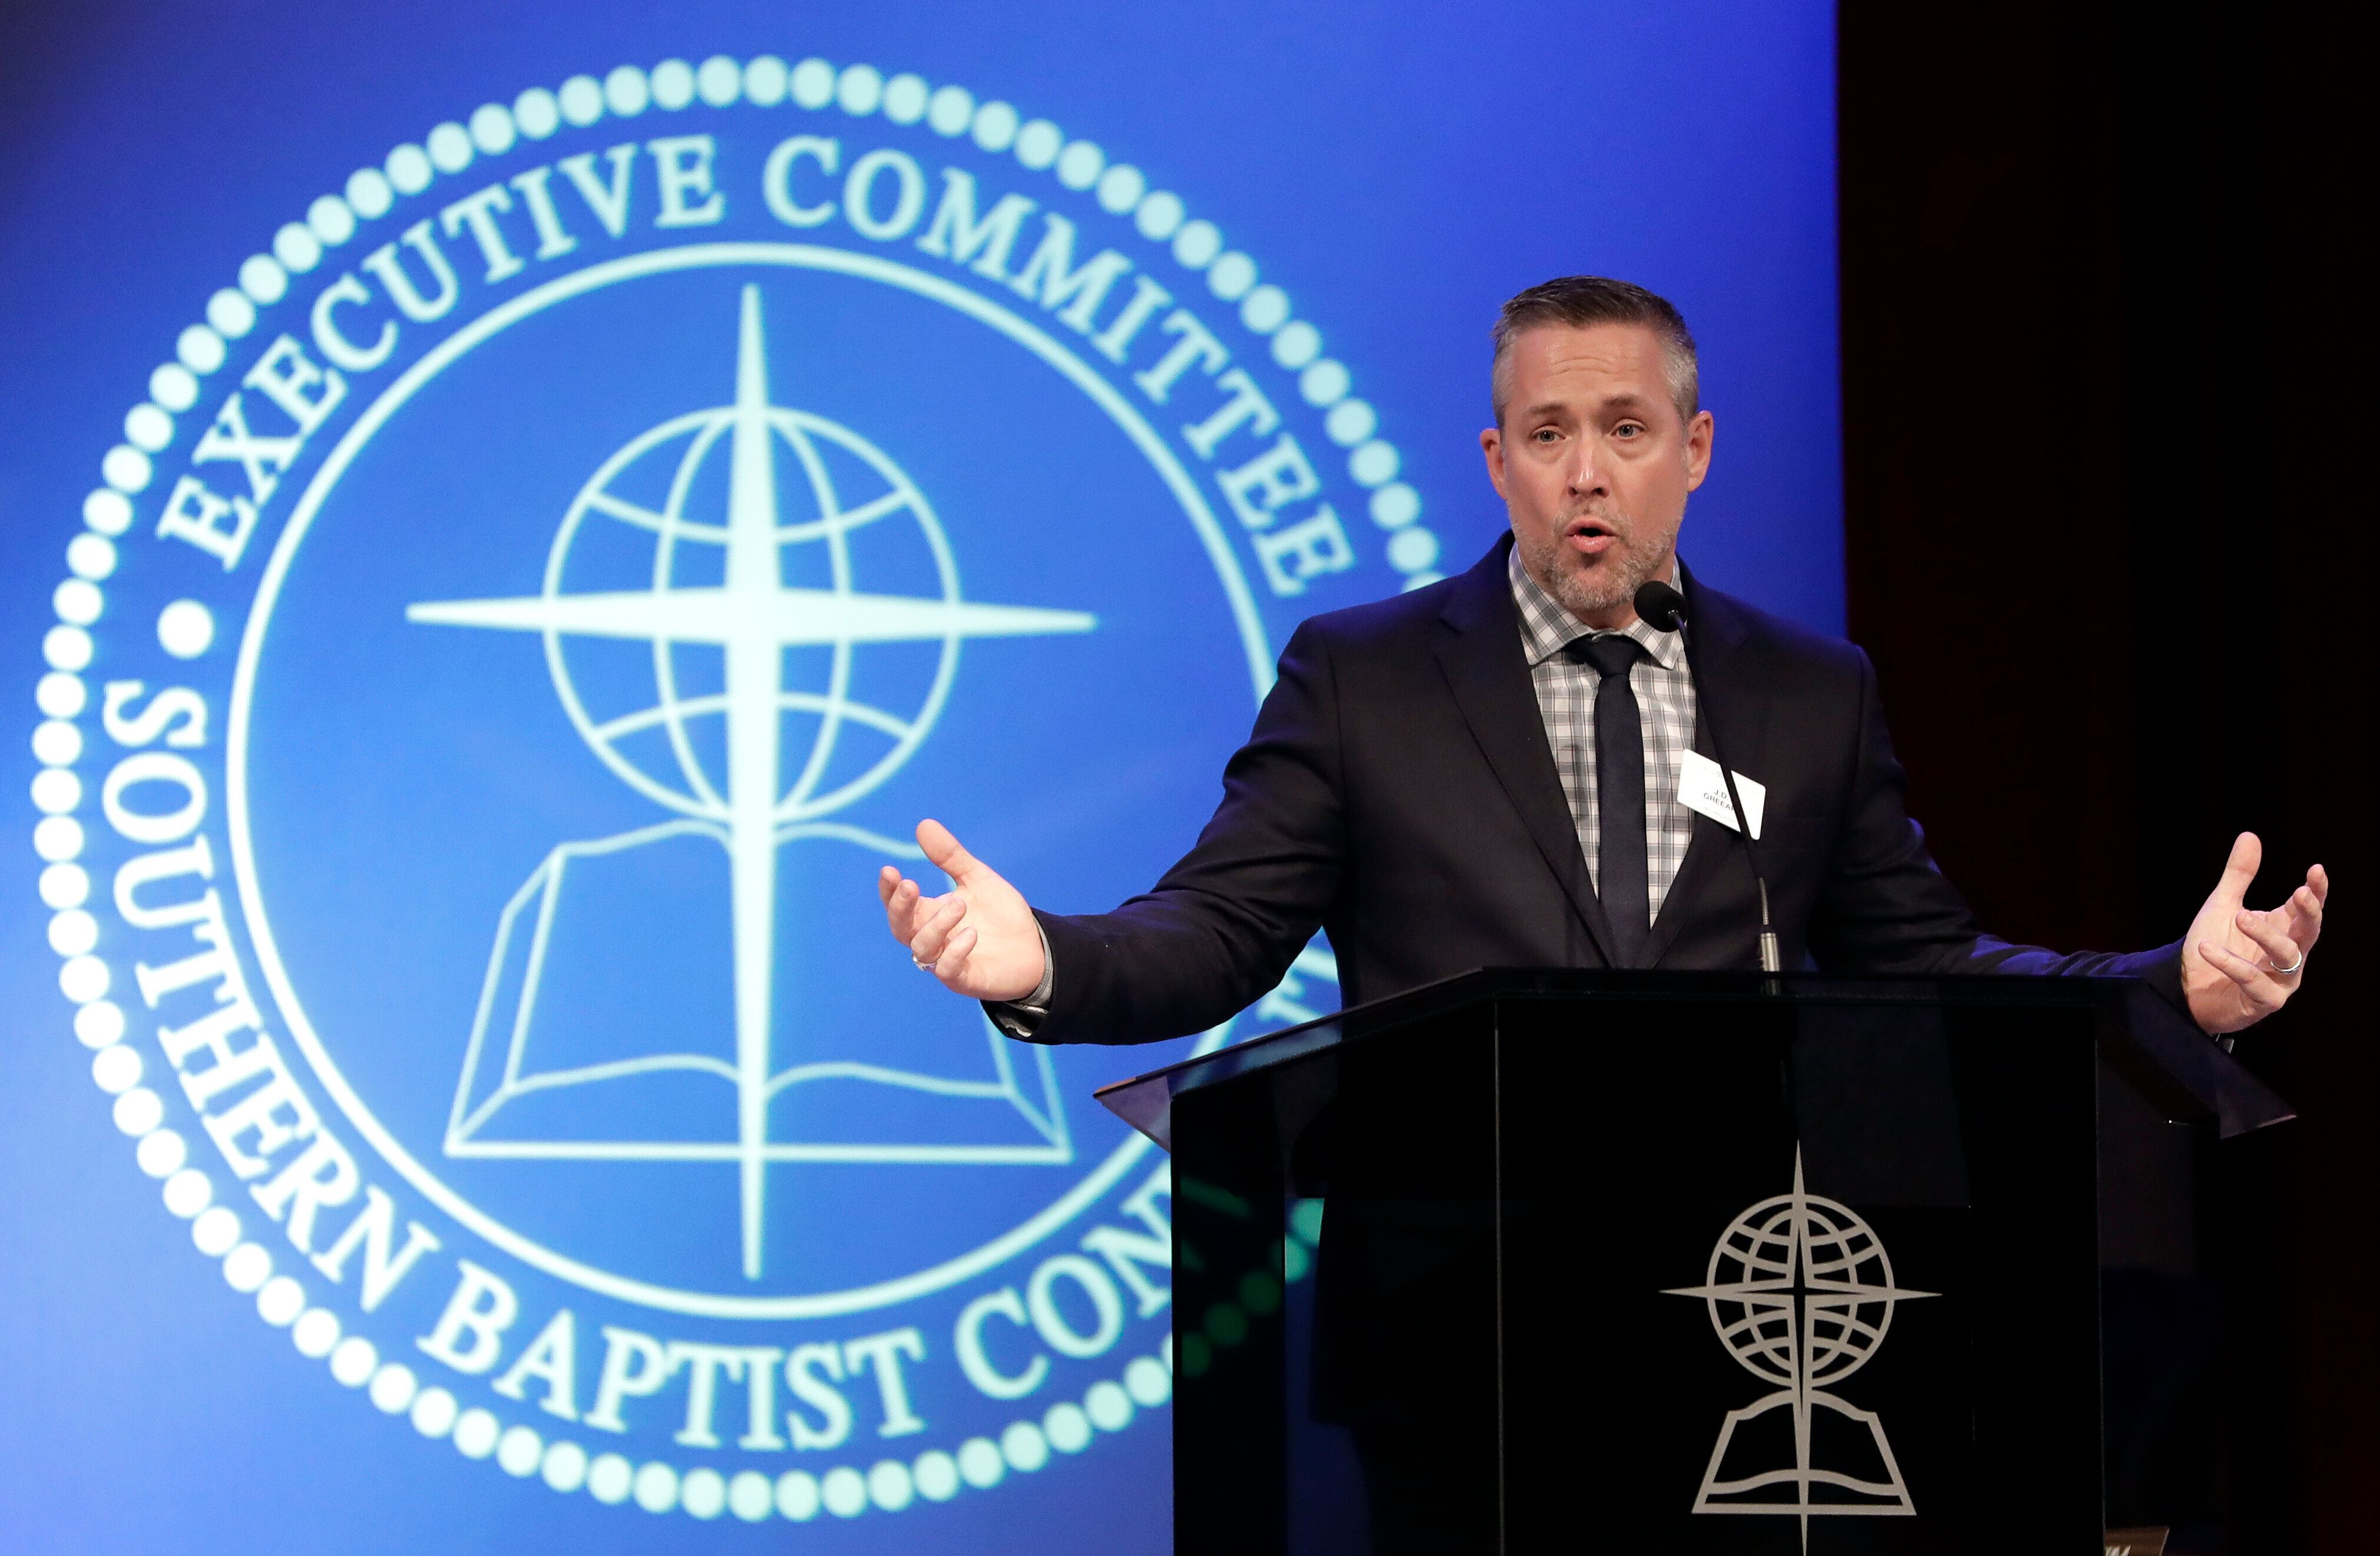 Southern Baptist Convention President J.D. Greear speaks to the denomination's executive committee in Nashville, Tennessee, o